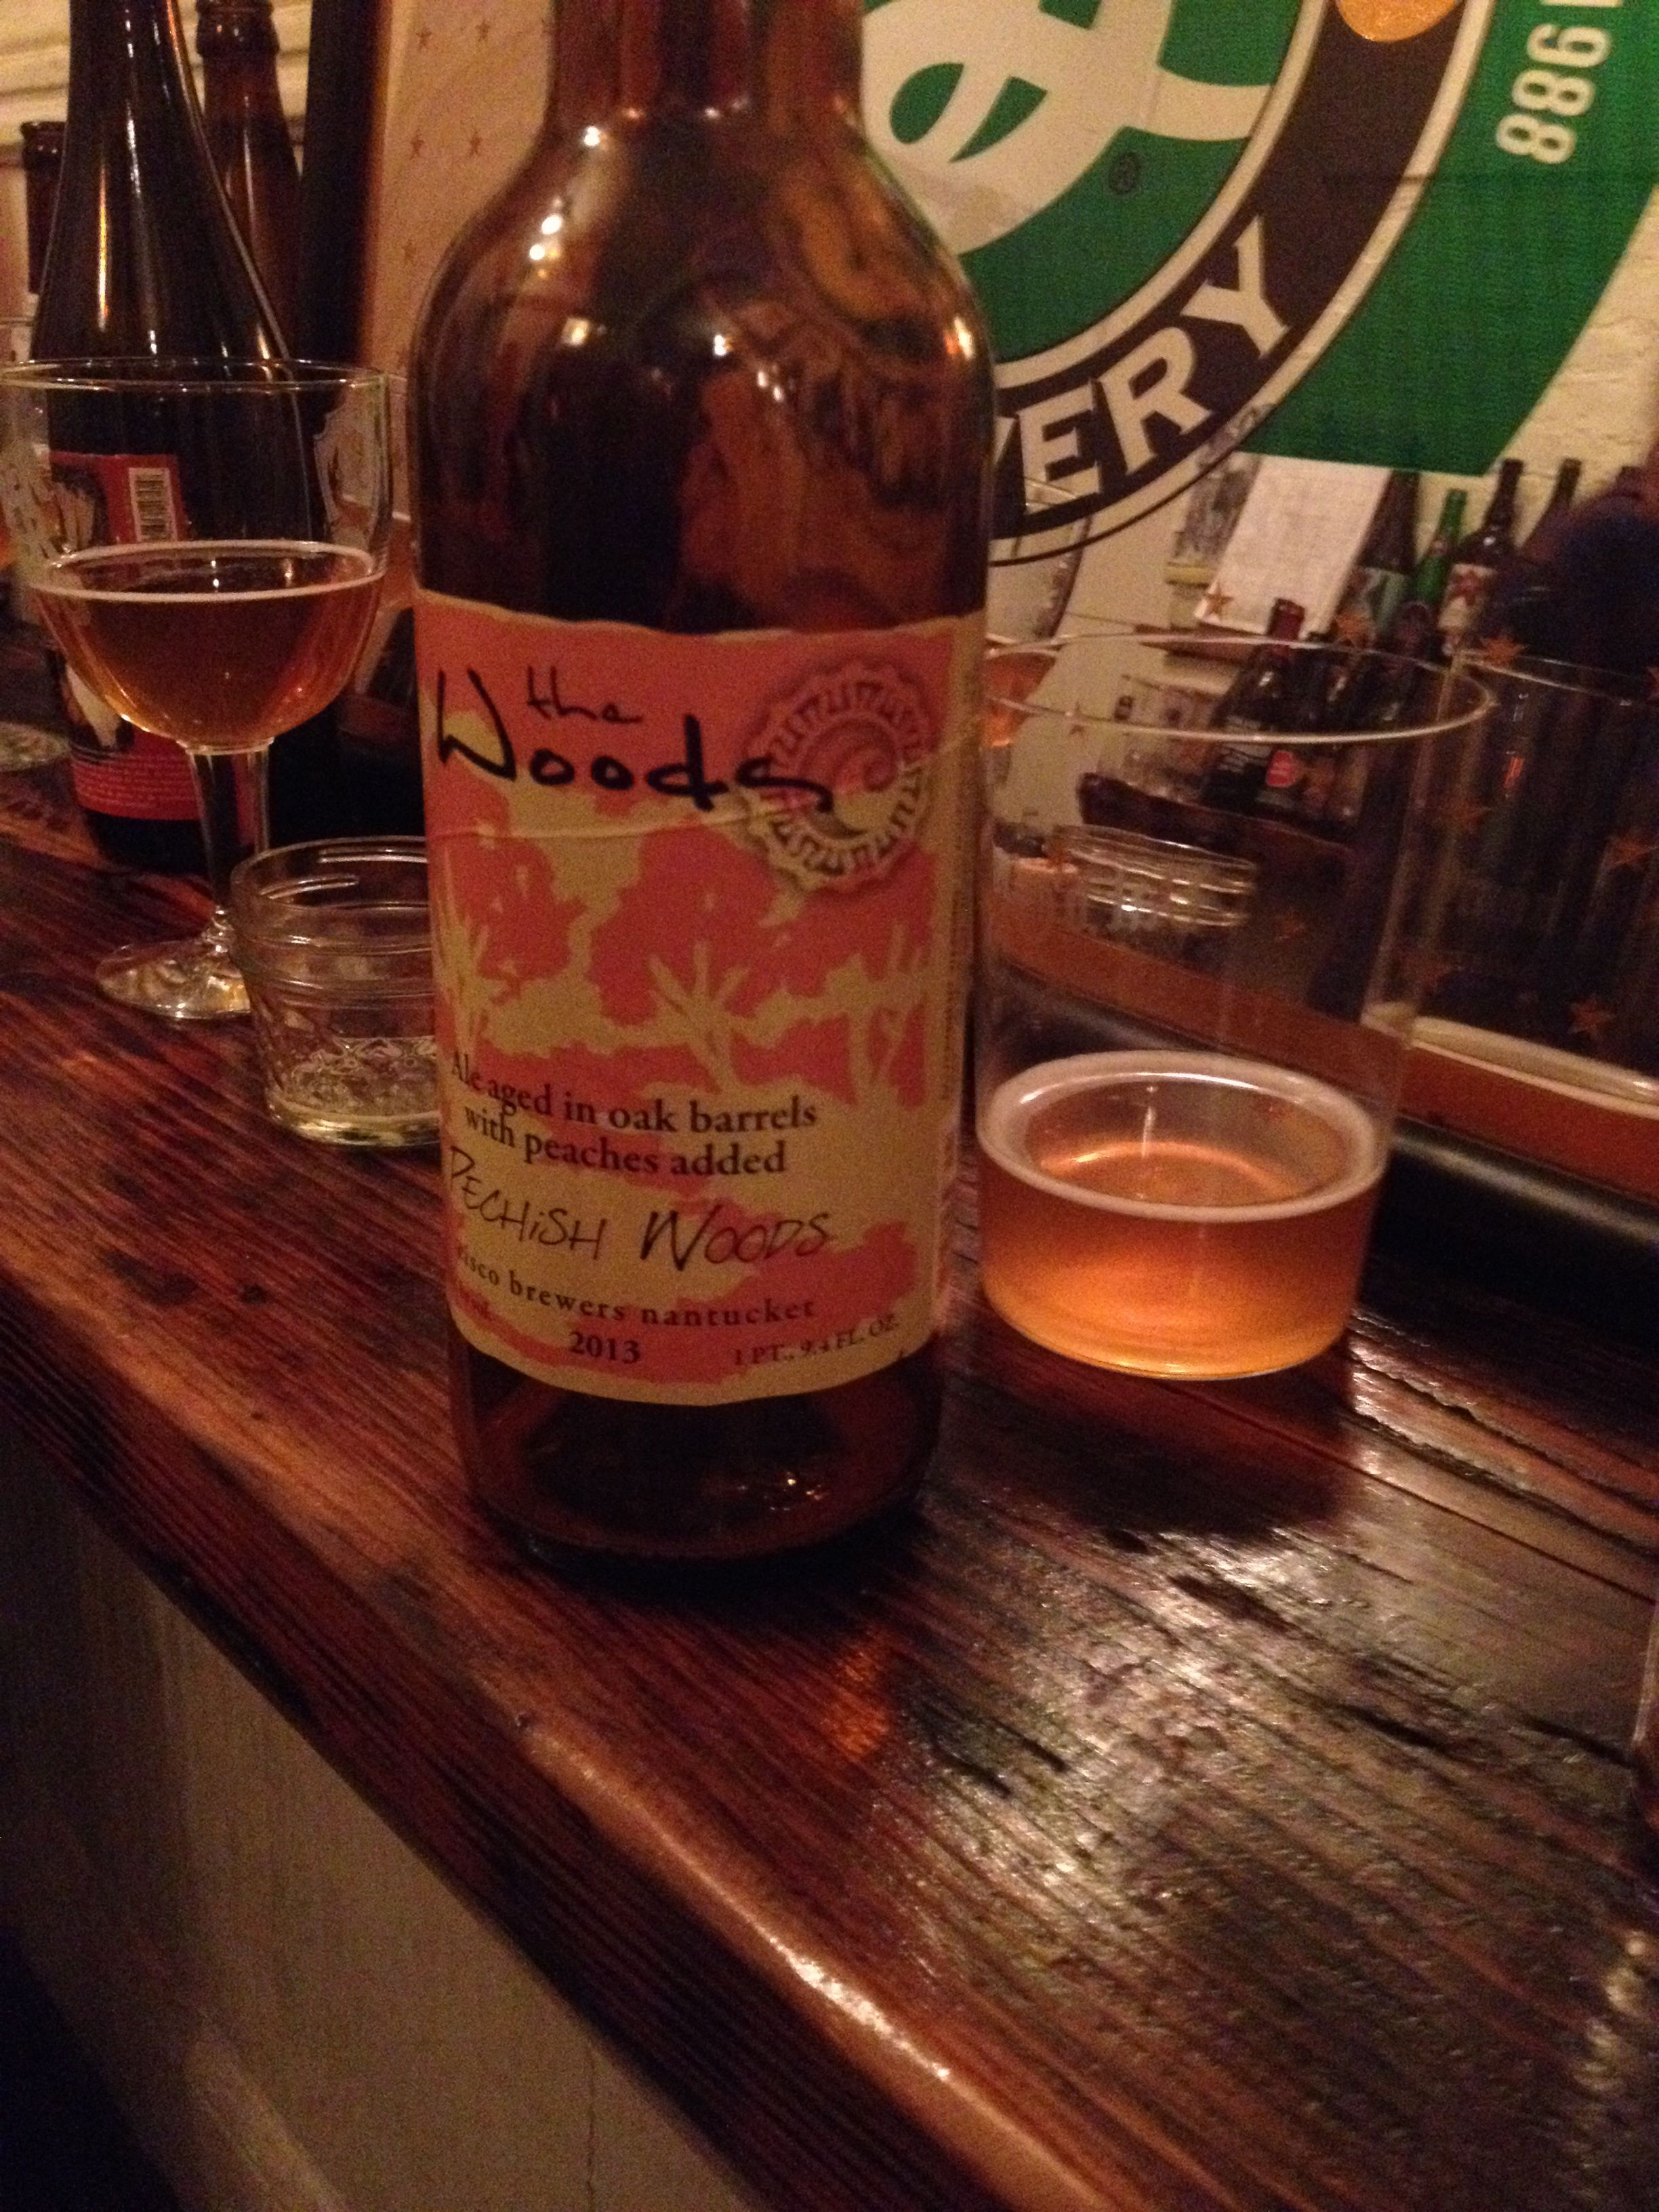 Pechish Woods Sour Beer Street Sour Beer Beer Beer Bottle